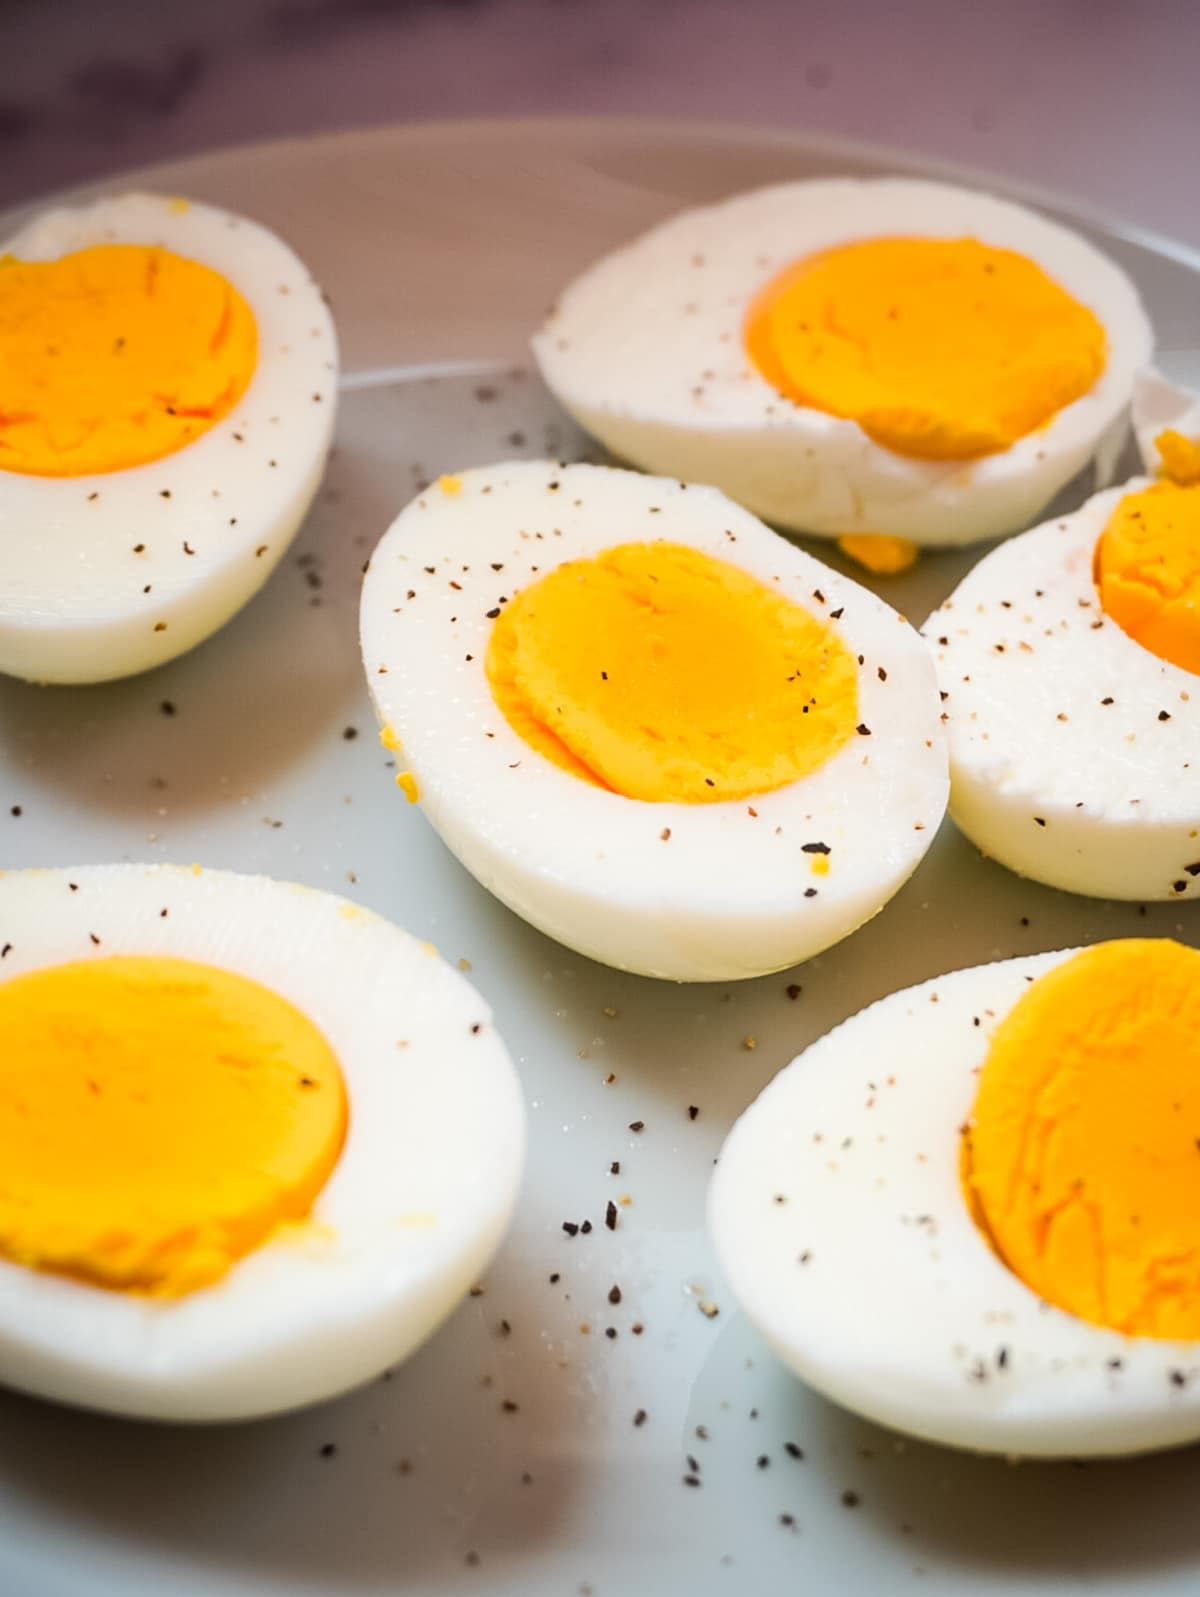 sliced hard boiled eggs on a plate